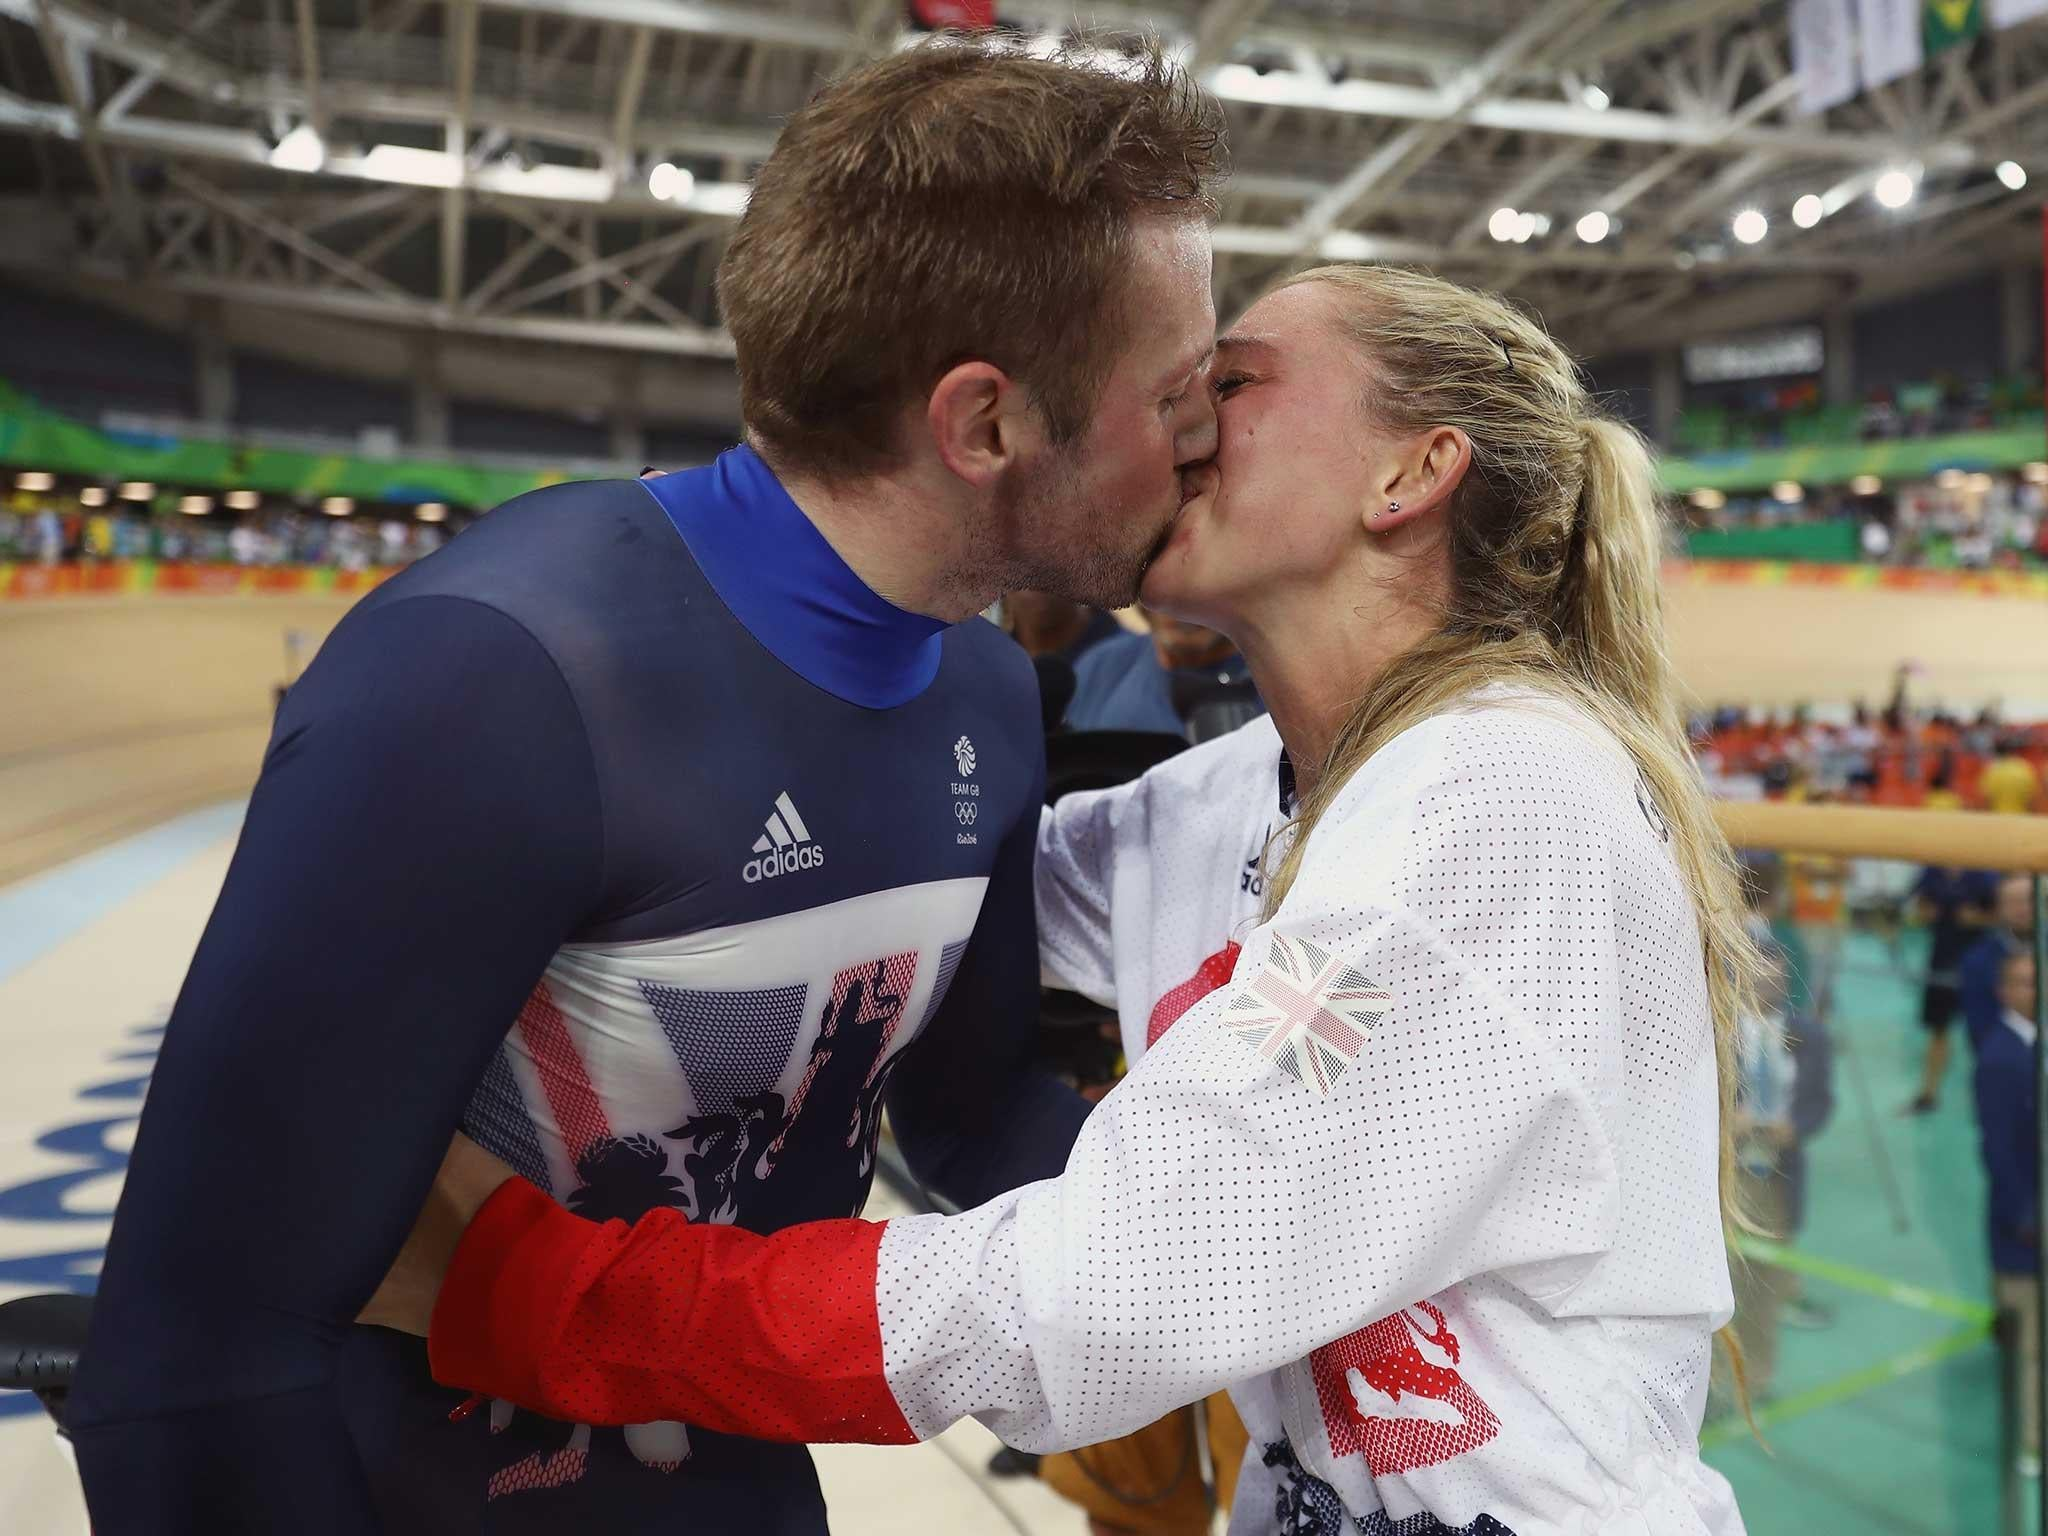 Gold medalist couple Laura Trott and Jason Kenny in emotional moment